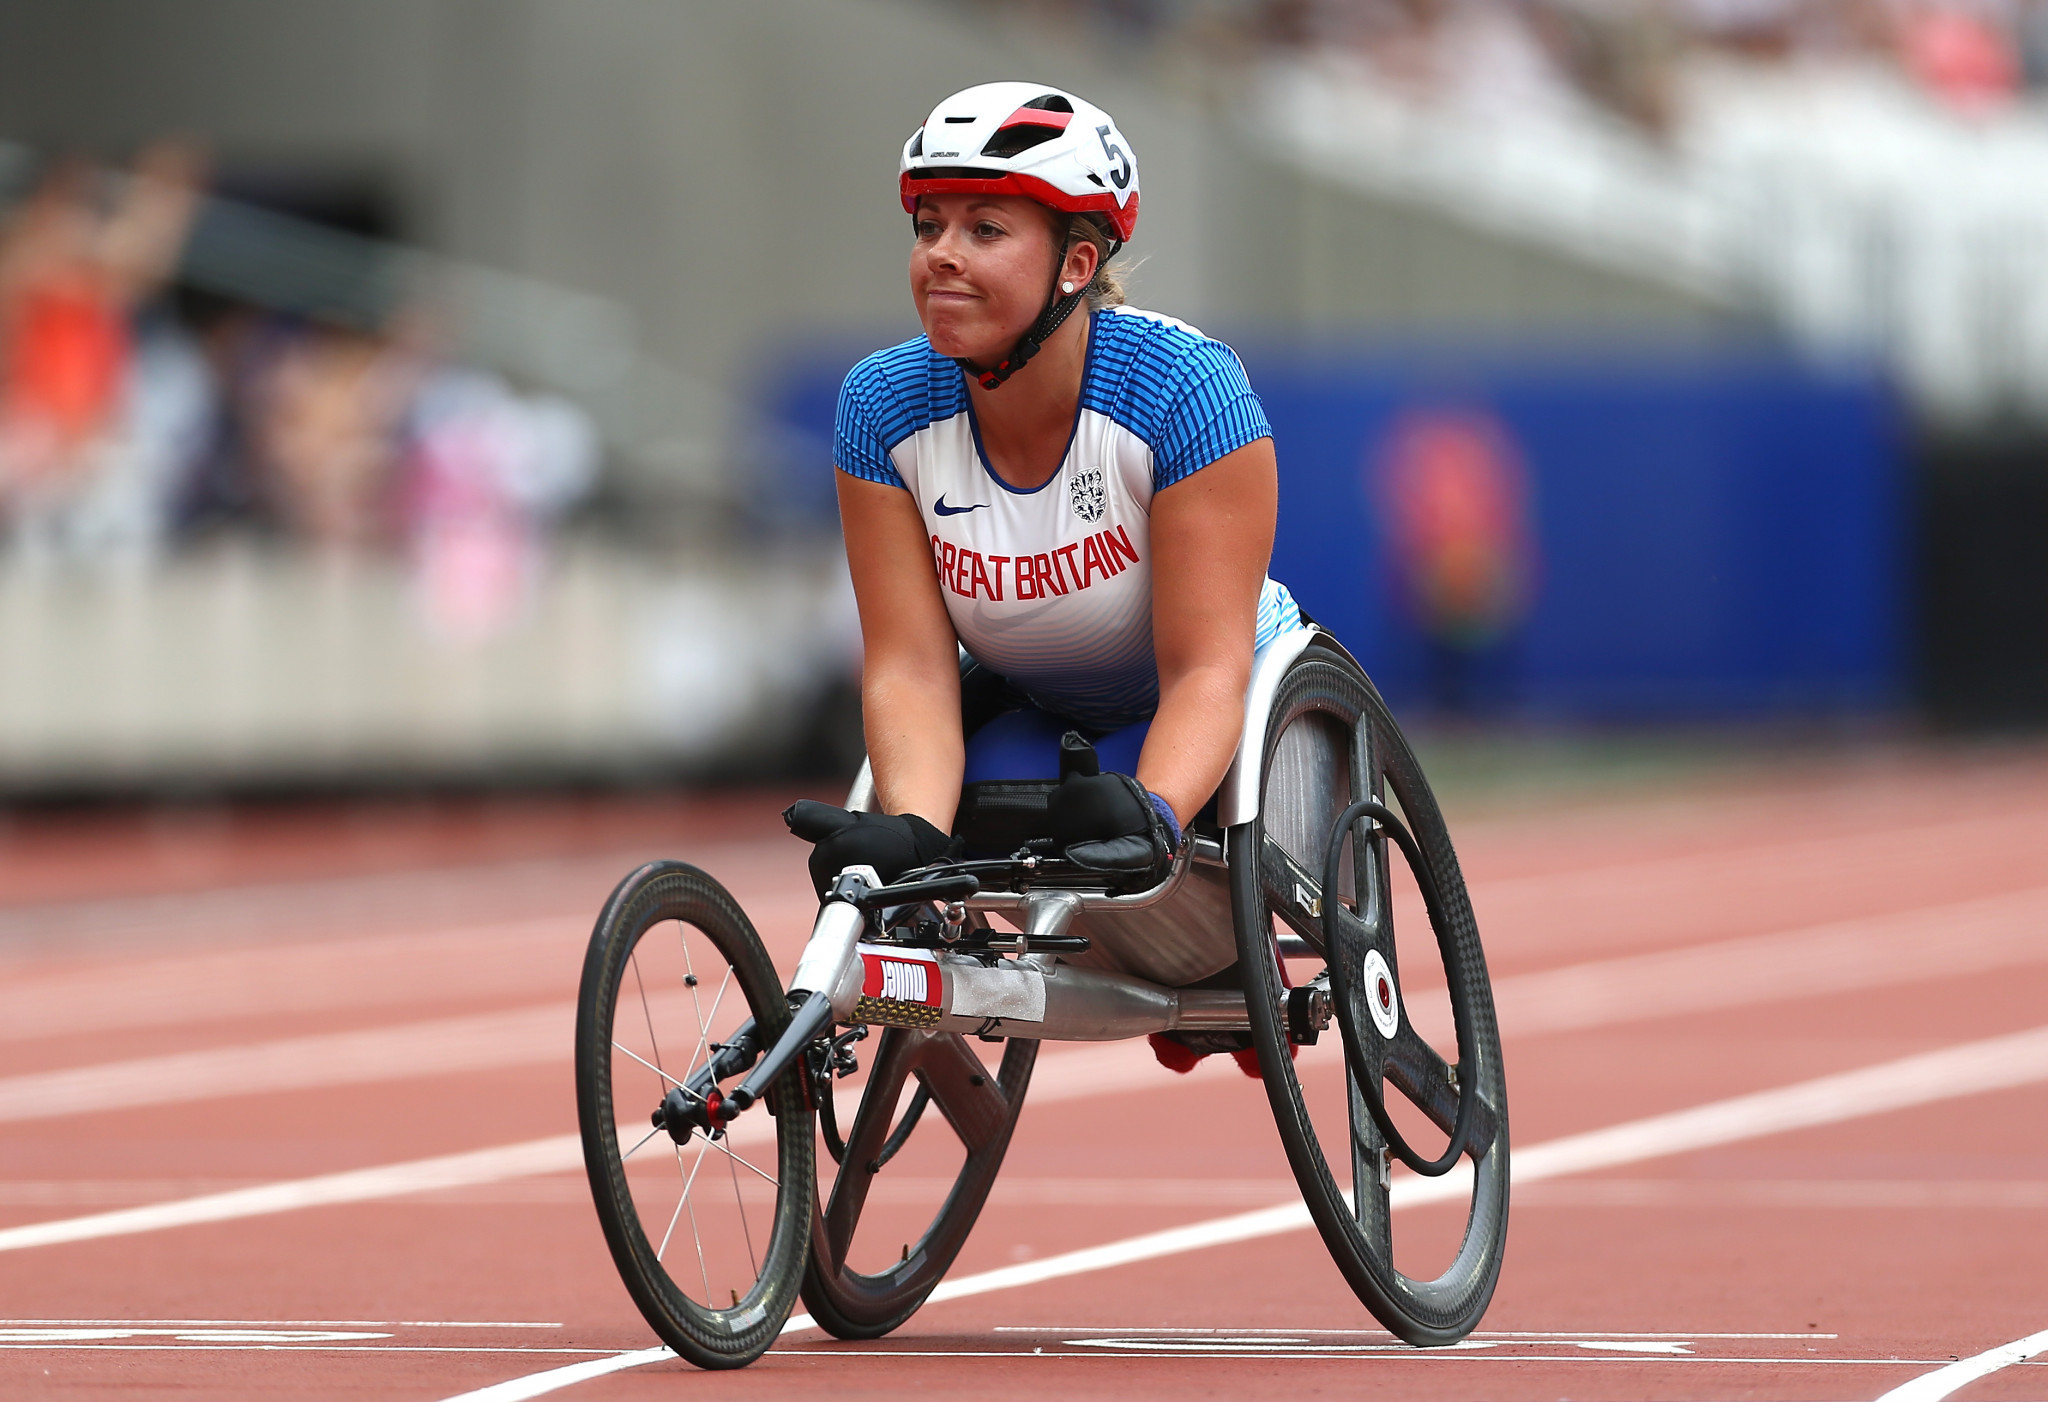 The 26-year-old is unbeaten in 2019 and has won five Paralympic medals, but does not have a kit sponsor ©Getty Images